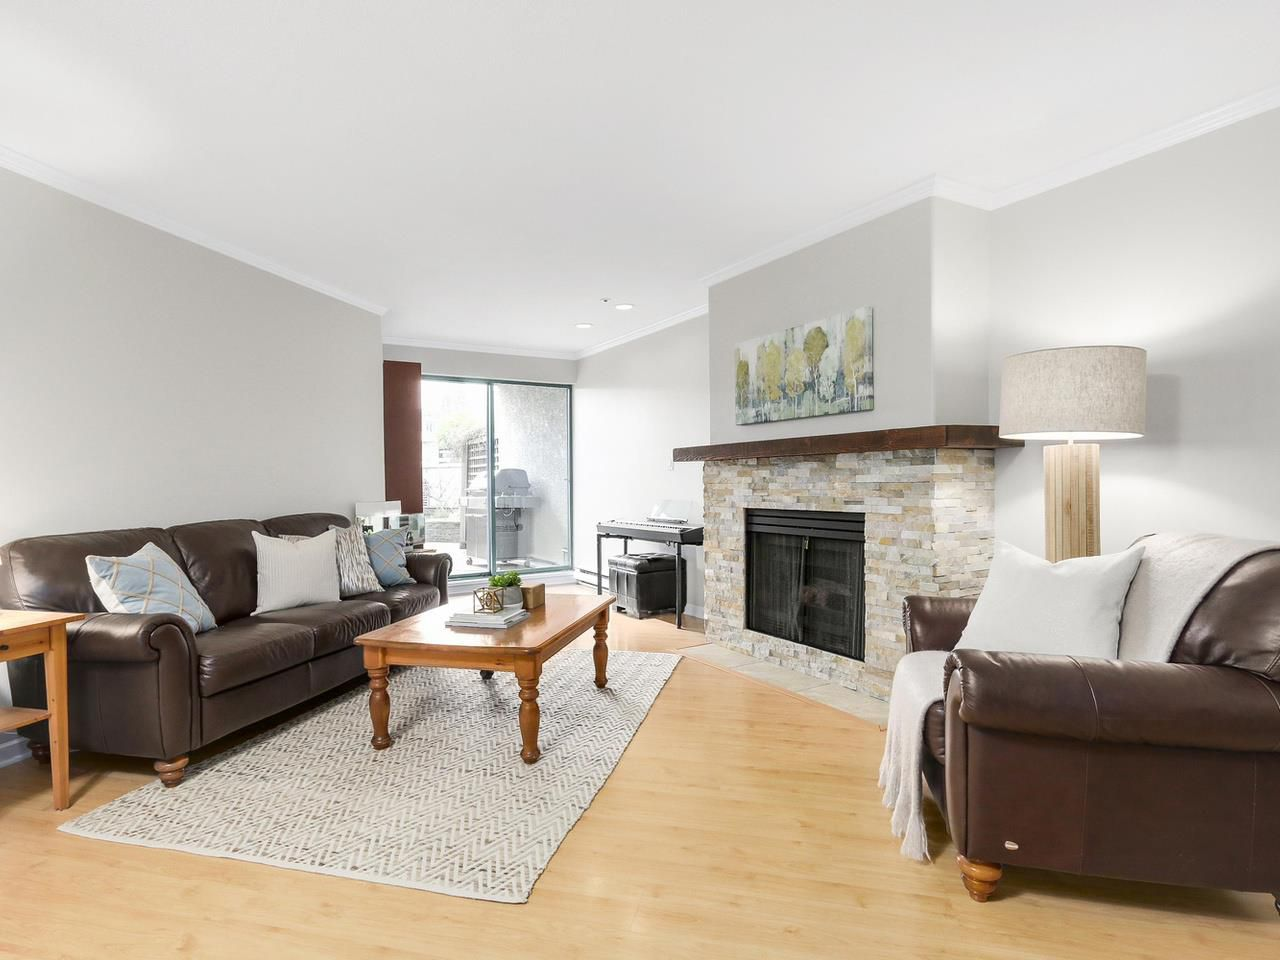 """Main Photo: 109 3131 MAIN Street in Vancouver: Mount Pleasant VE Condo for sale in """"CARTIER PLACE"""" (Vancouver East)  : MLS®# R2149352"""